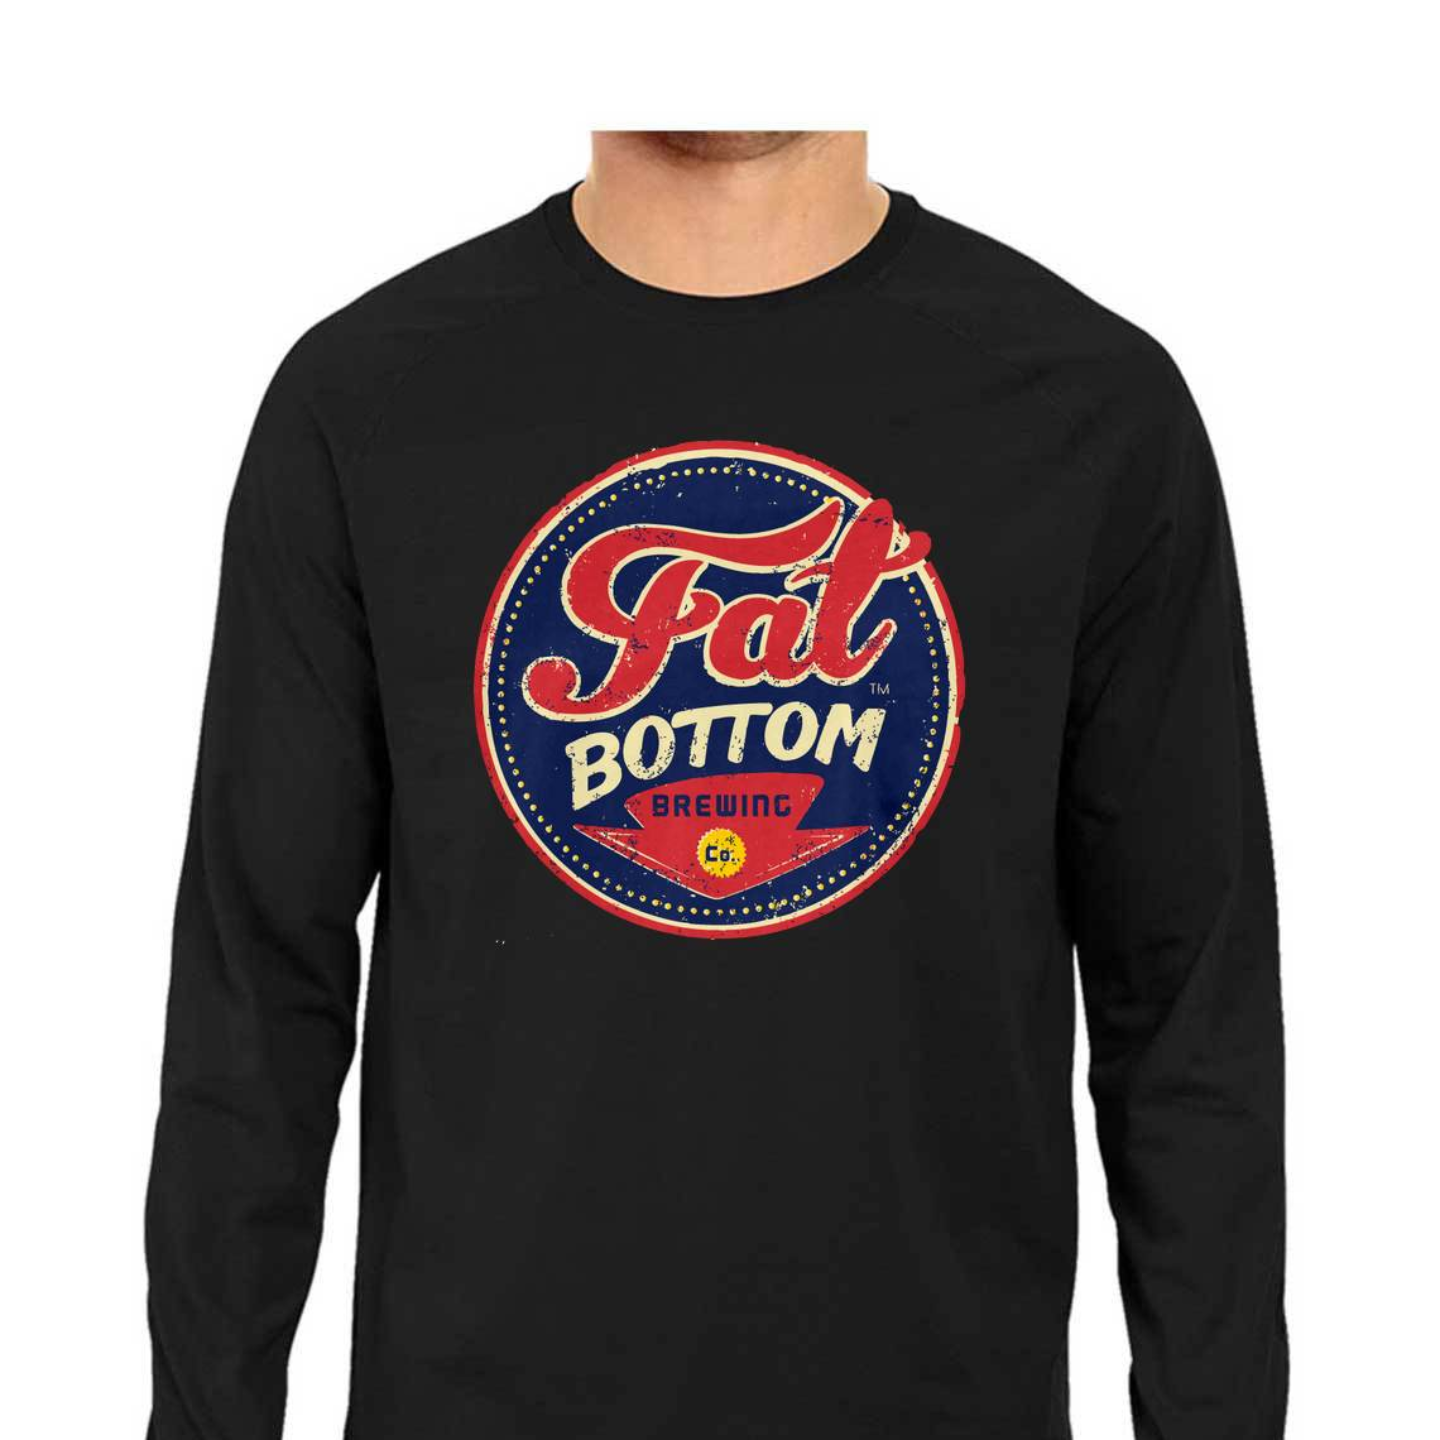 Fat Bottom Brewing Co Full Sleeves Tshirt